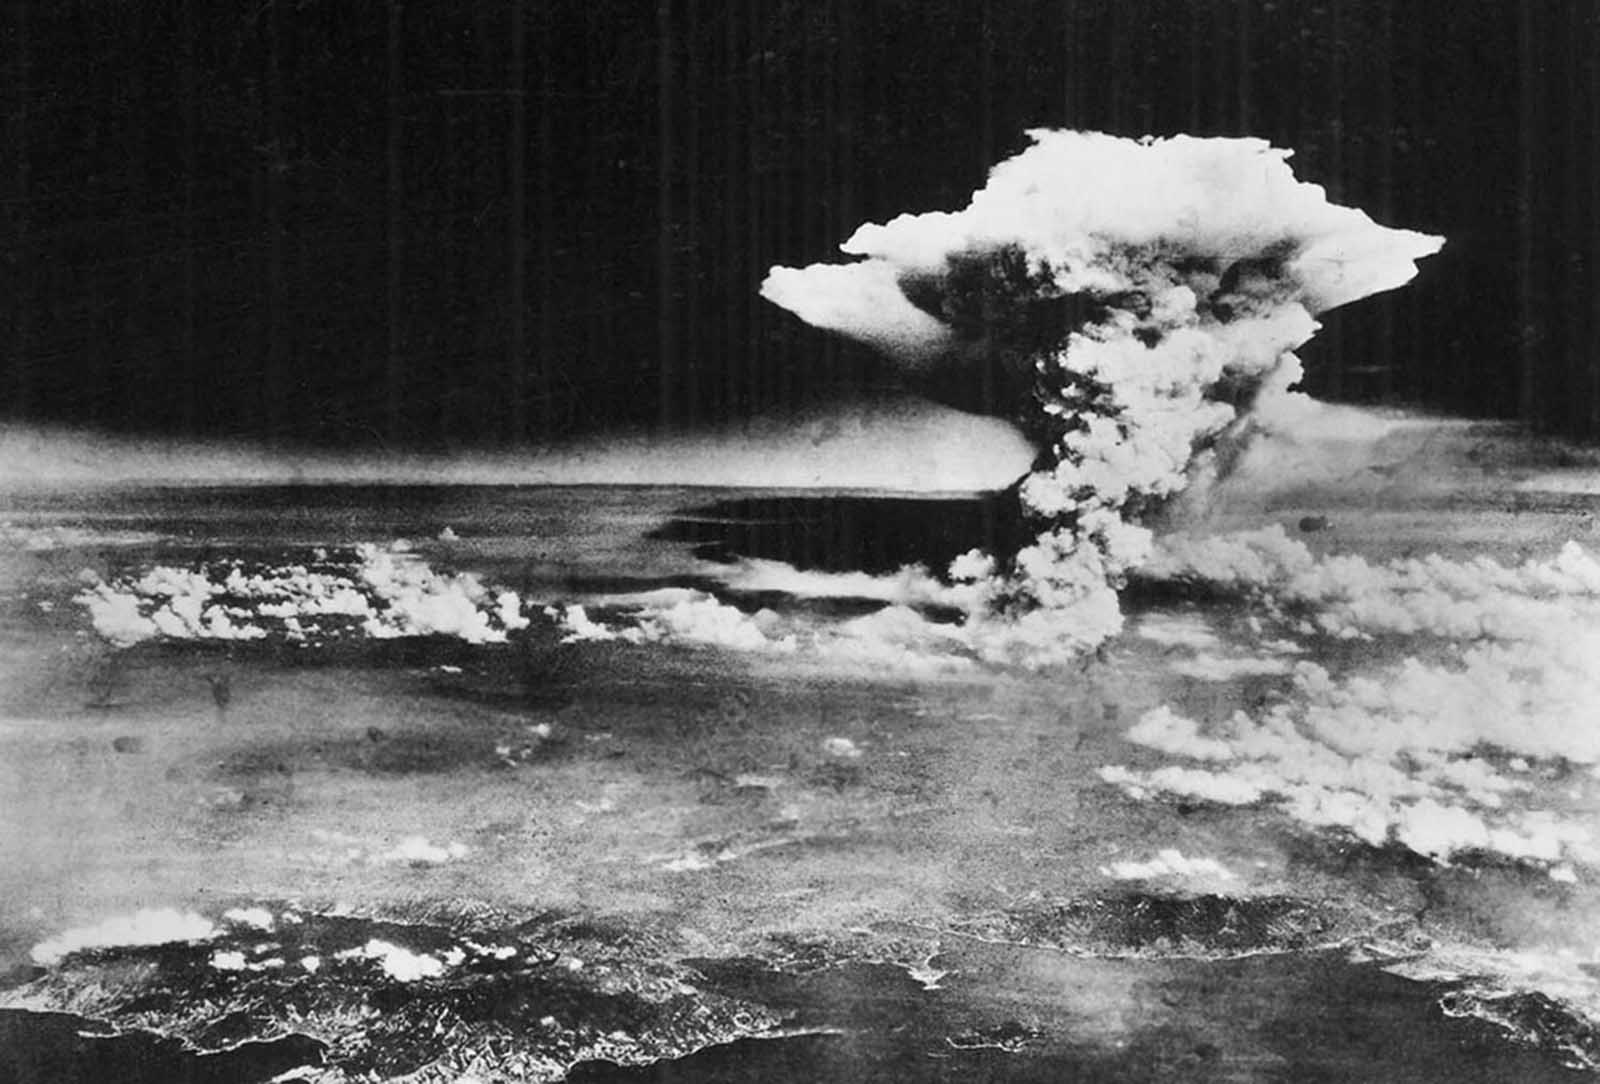 On August 6, 1945, a mushroom cloud billows into the sky about one hour after an atomic bomb was dropped by American B-29 bomber, the Enola Gay, detonating above Hiroshima, Japan. Nearly 80,000 people are believed to have been killed immediately, with possibly another 60,000 survivors dying of injuries and radiation exposure by 1950.